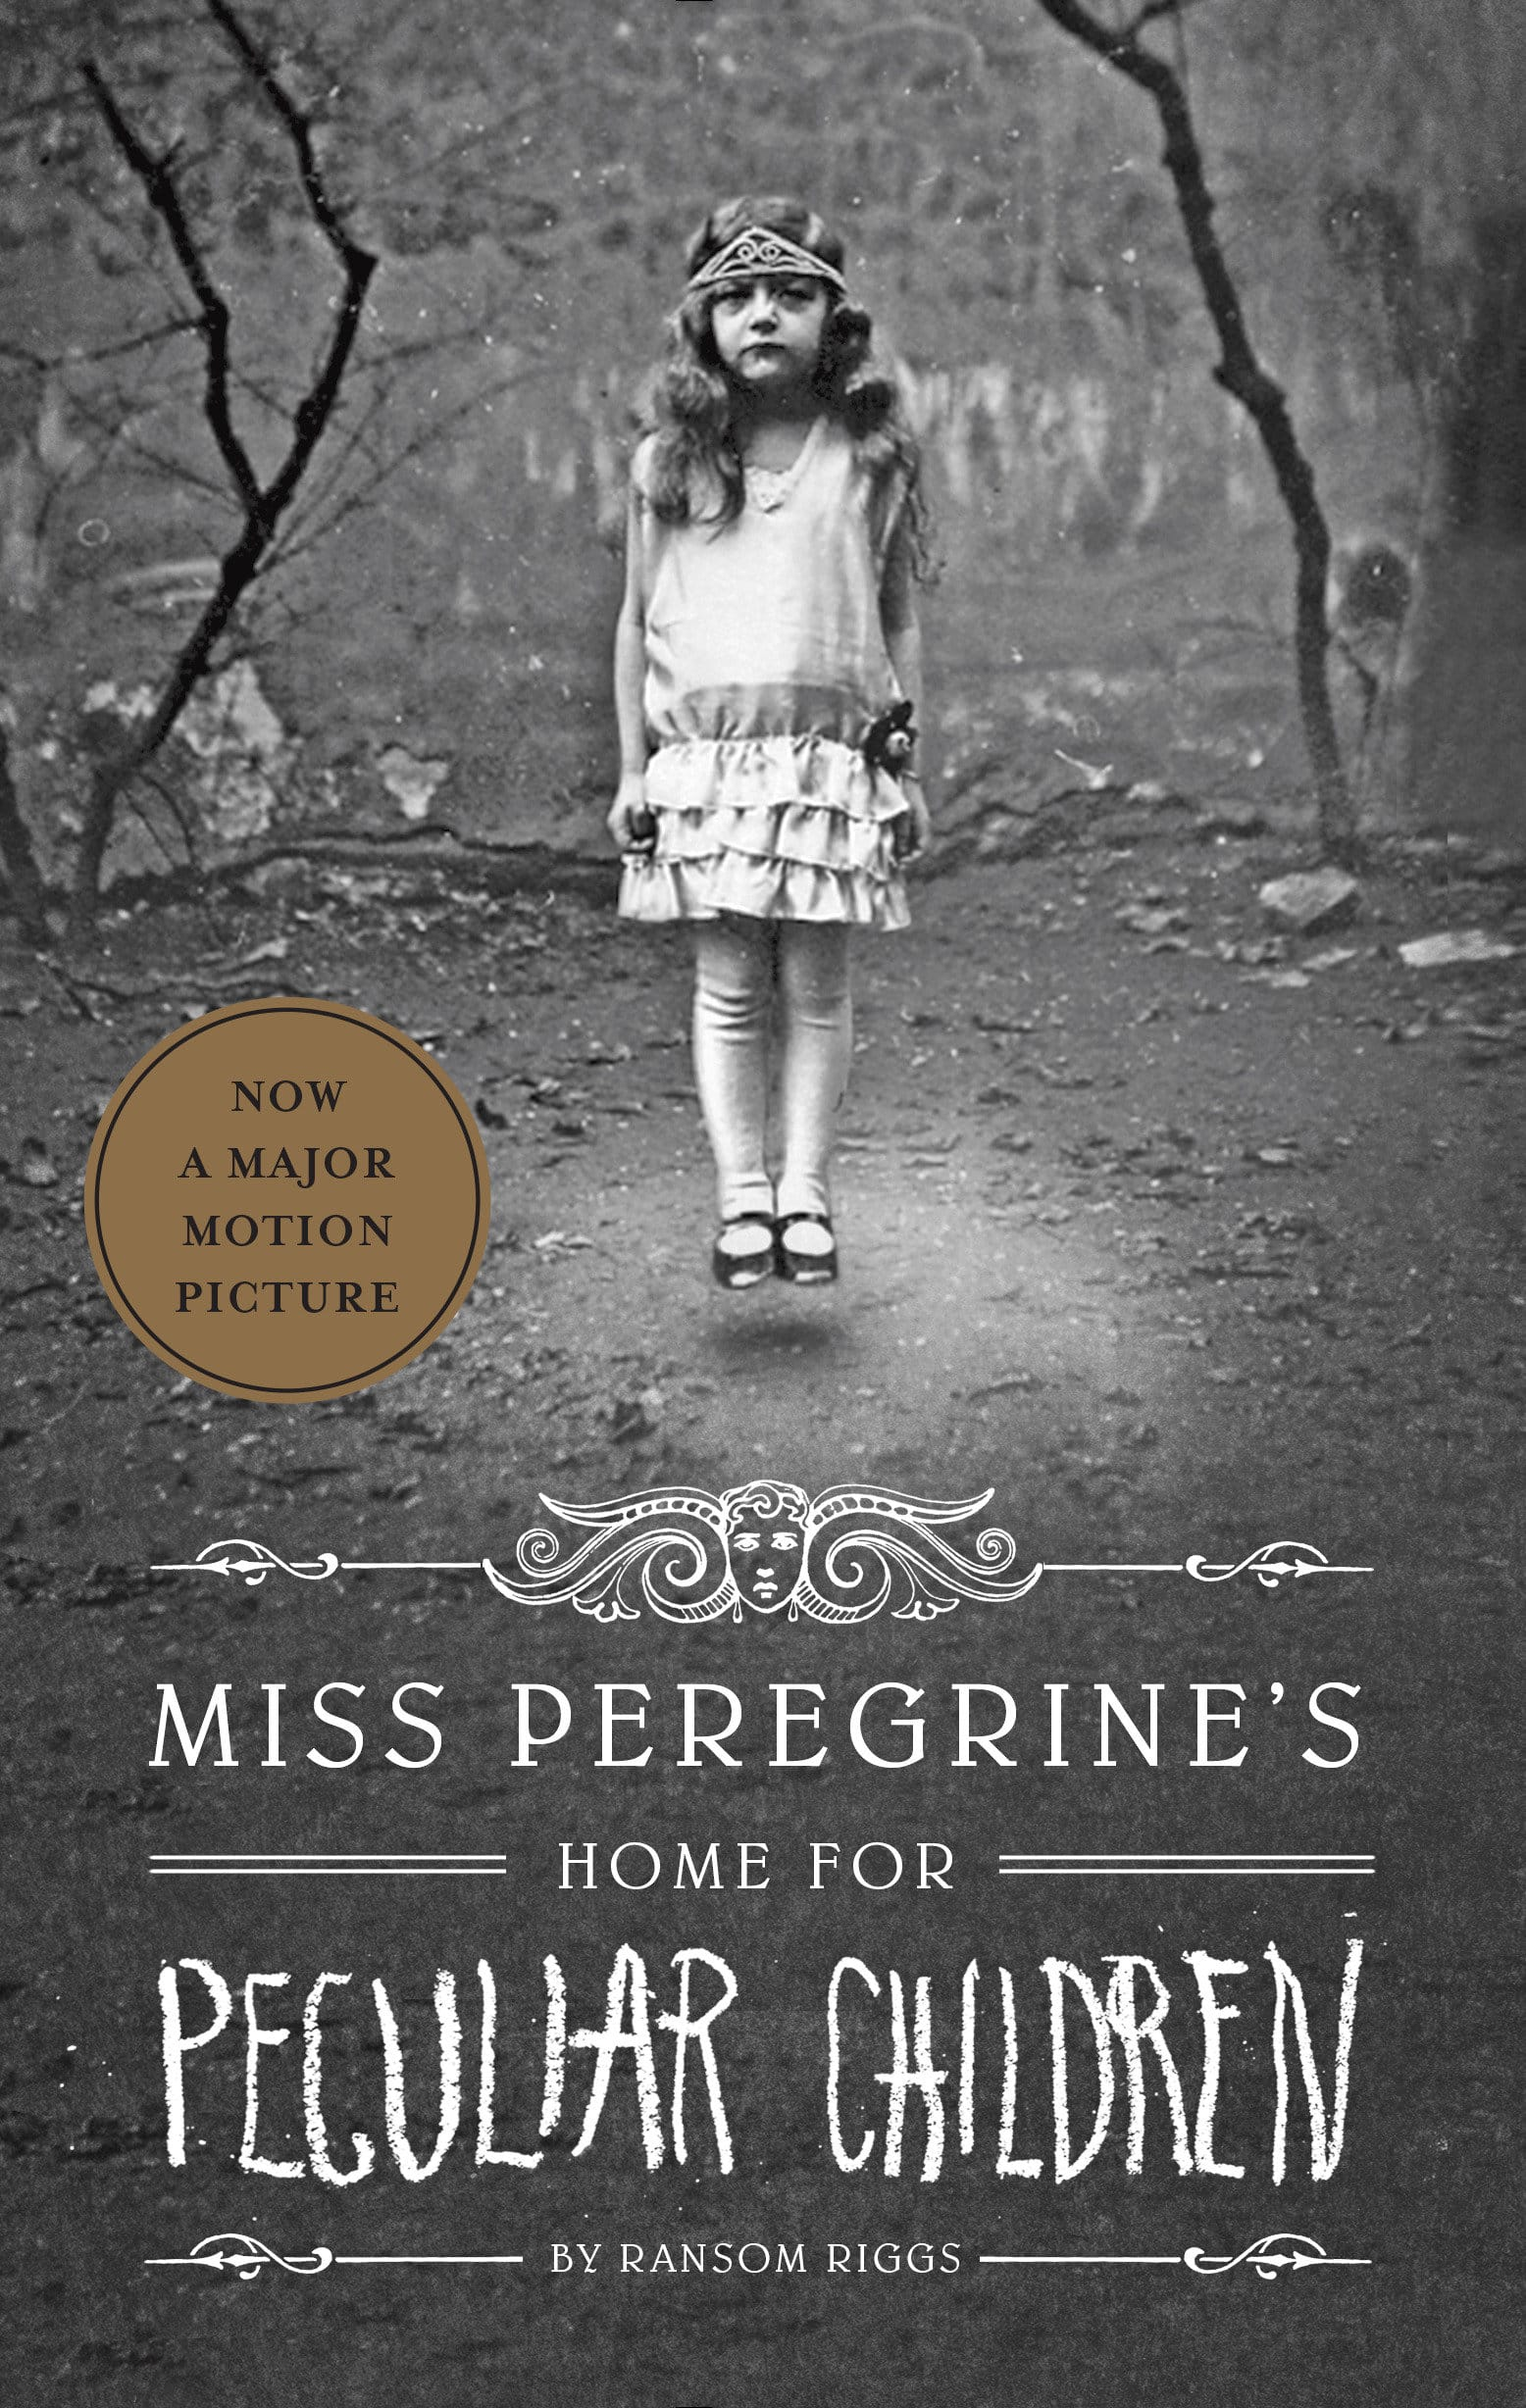 Kindle Fantasy YA eBook Series: Miss Peregrine's Home for Peculiar Children Books 1-4 - $1.99 each - Amazon, Google Play and Nook